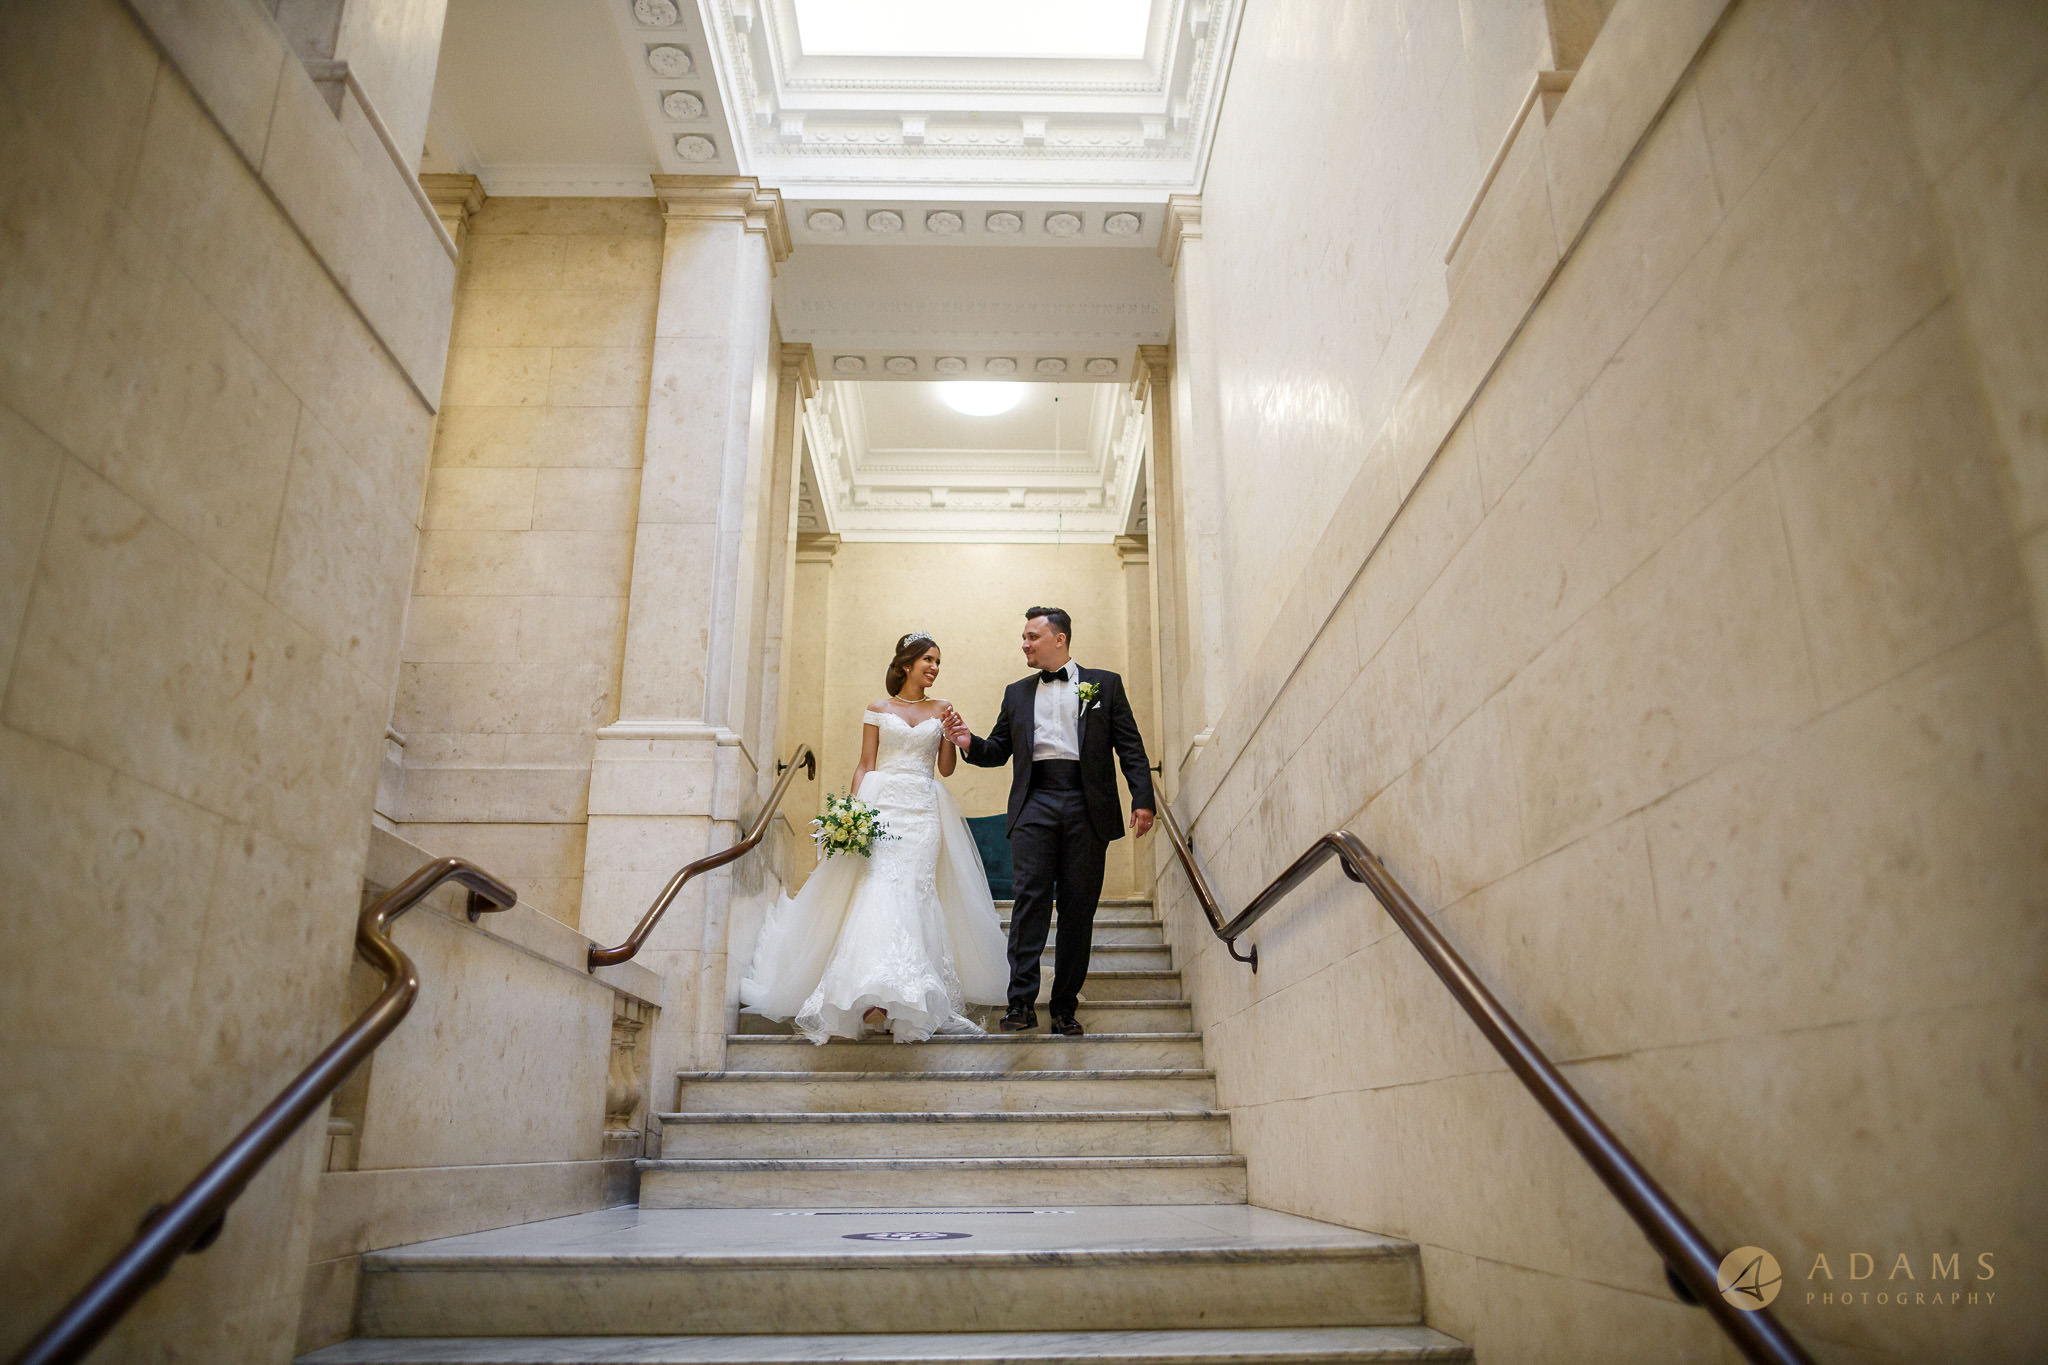 Bride and groom walking down the starts at Old Marylebone Town Hall